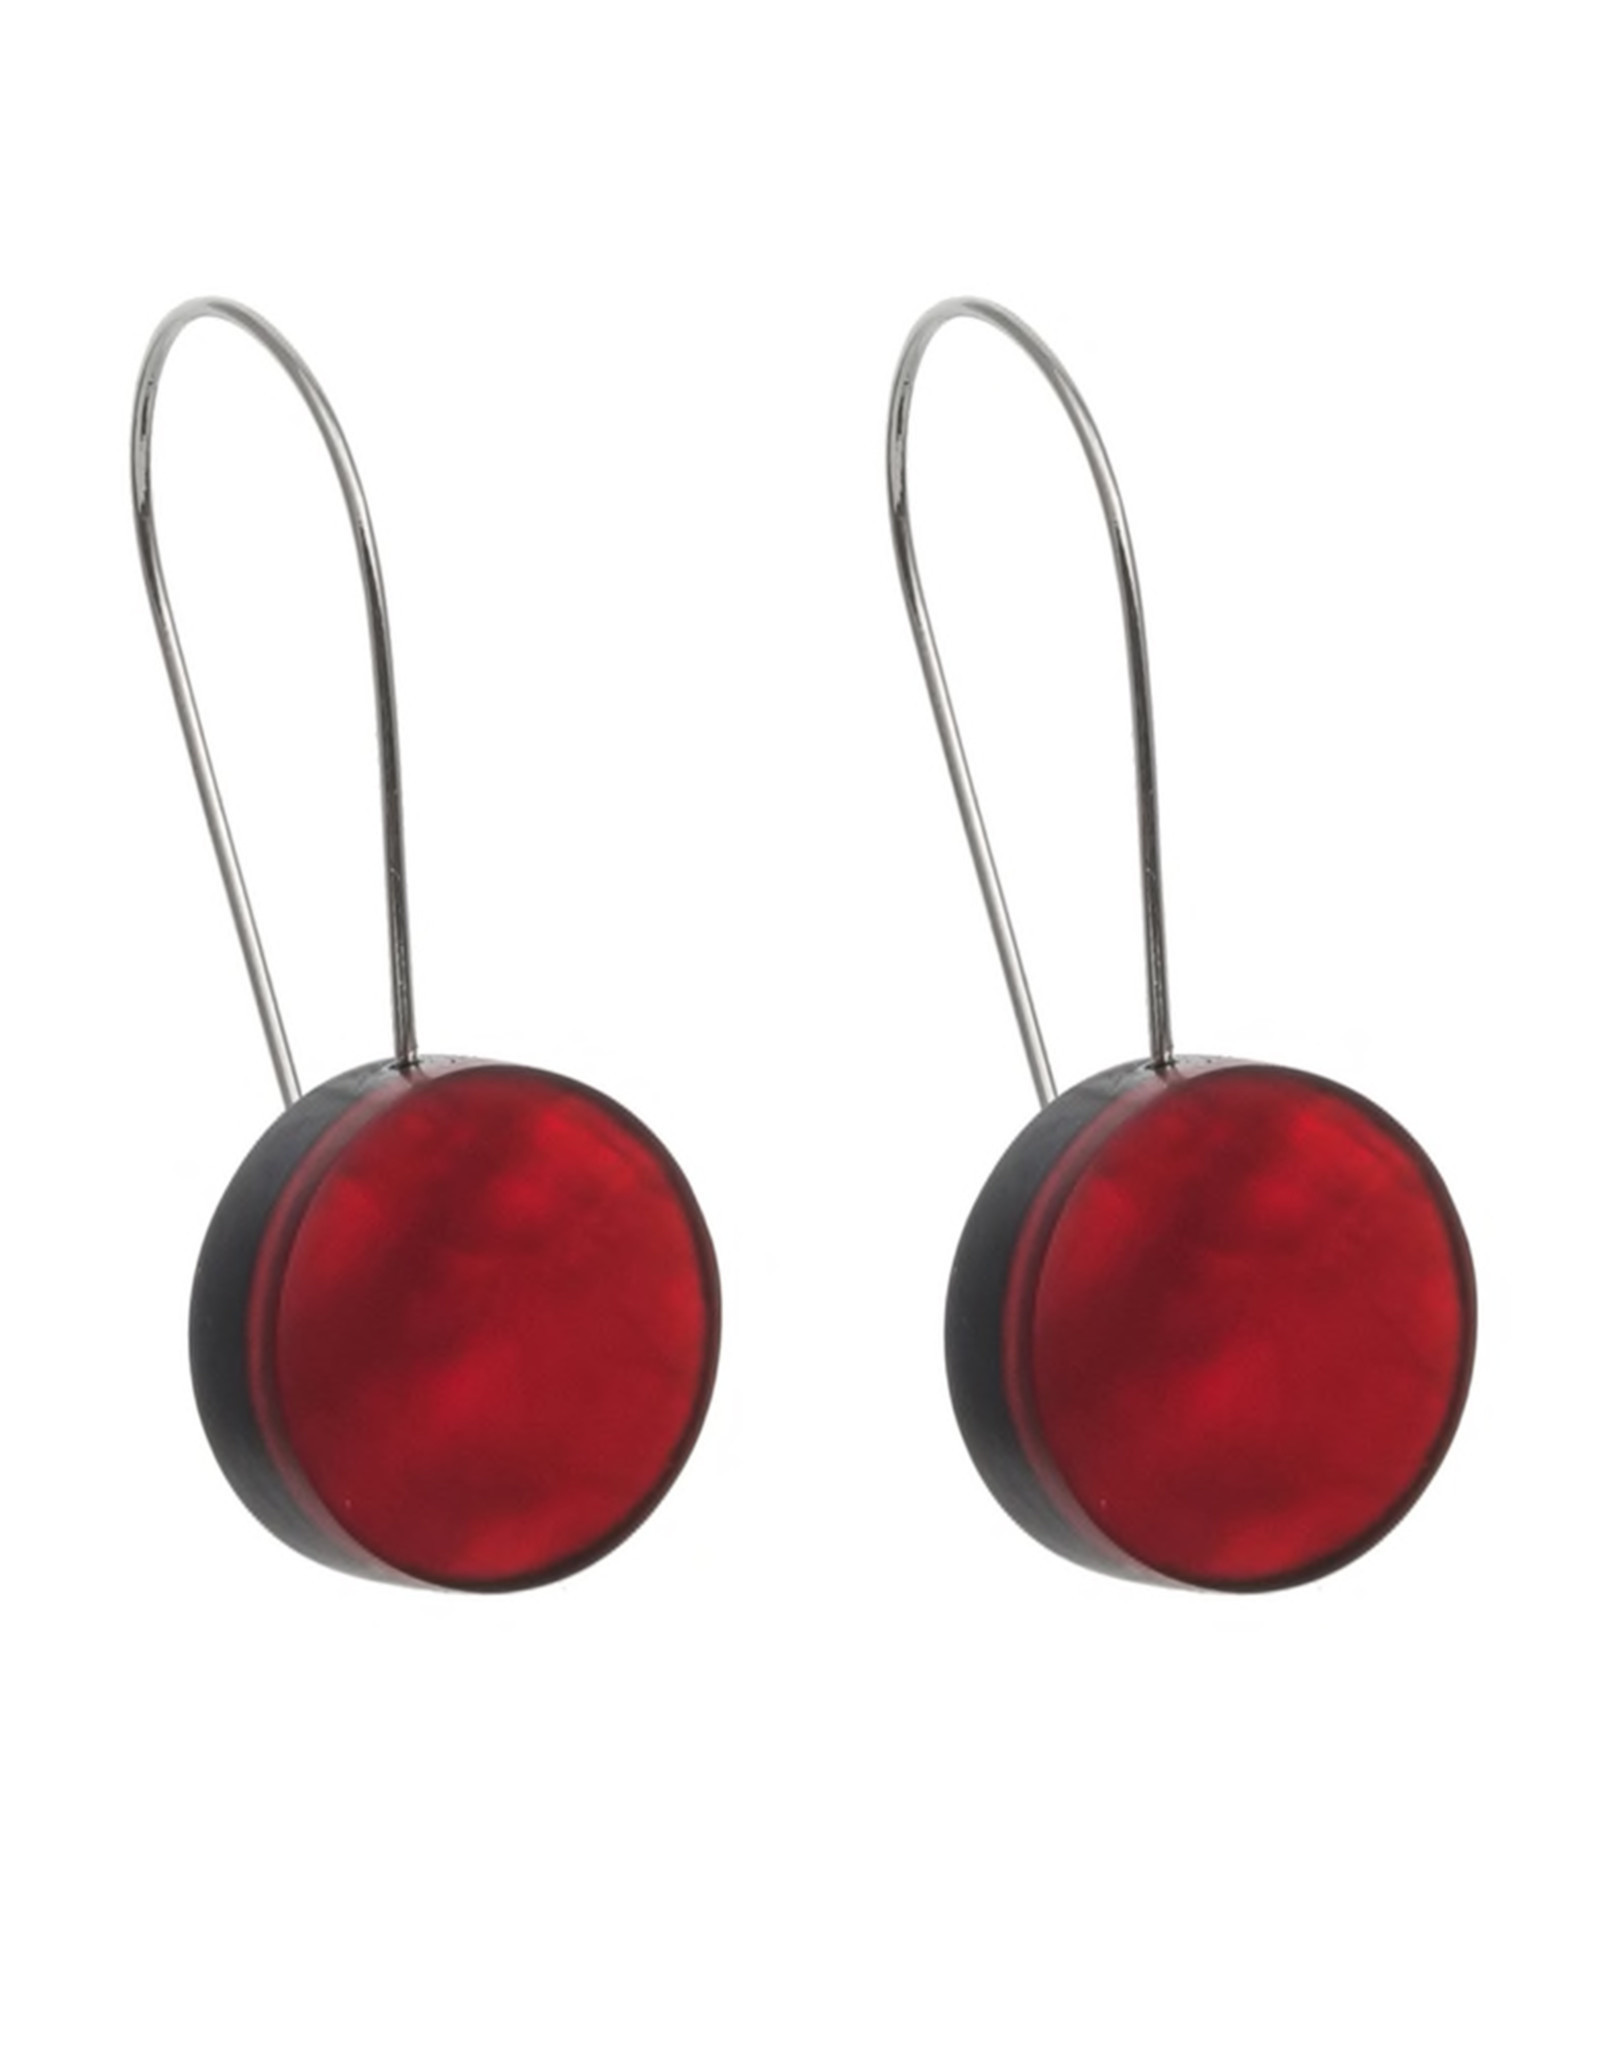 ORIGIN JEWELRY RED DISK EARRINGS